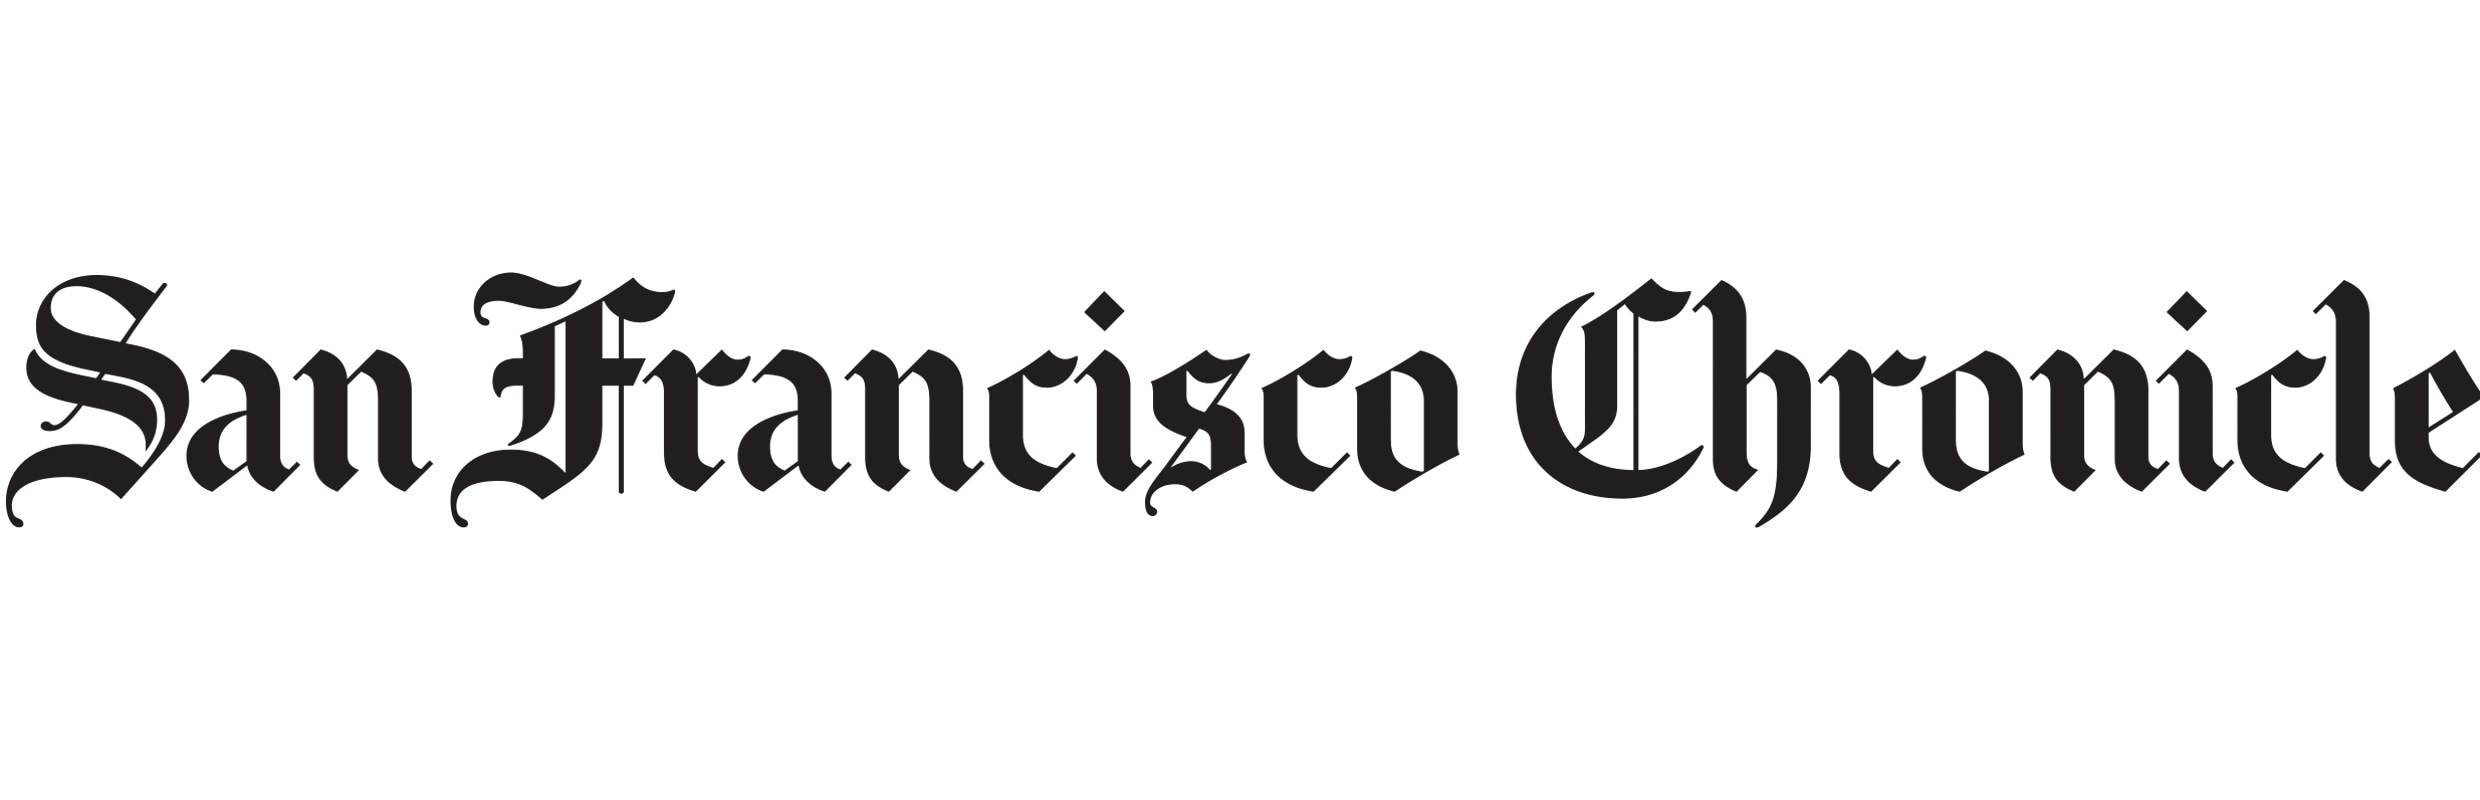 San francisco chronicle selected